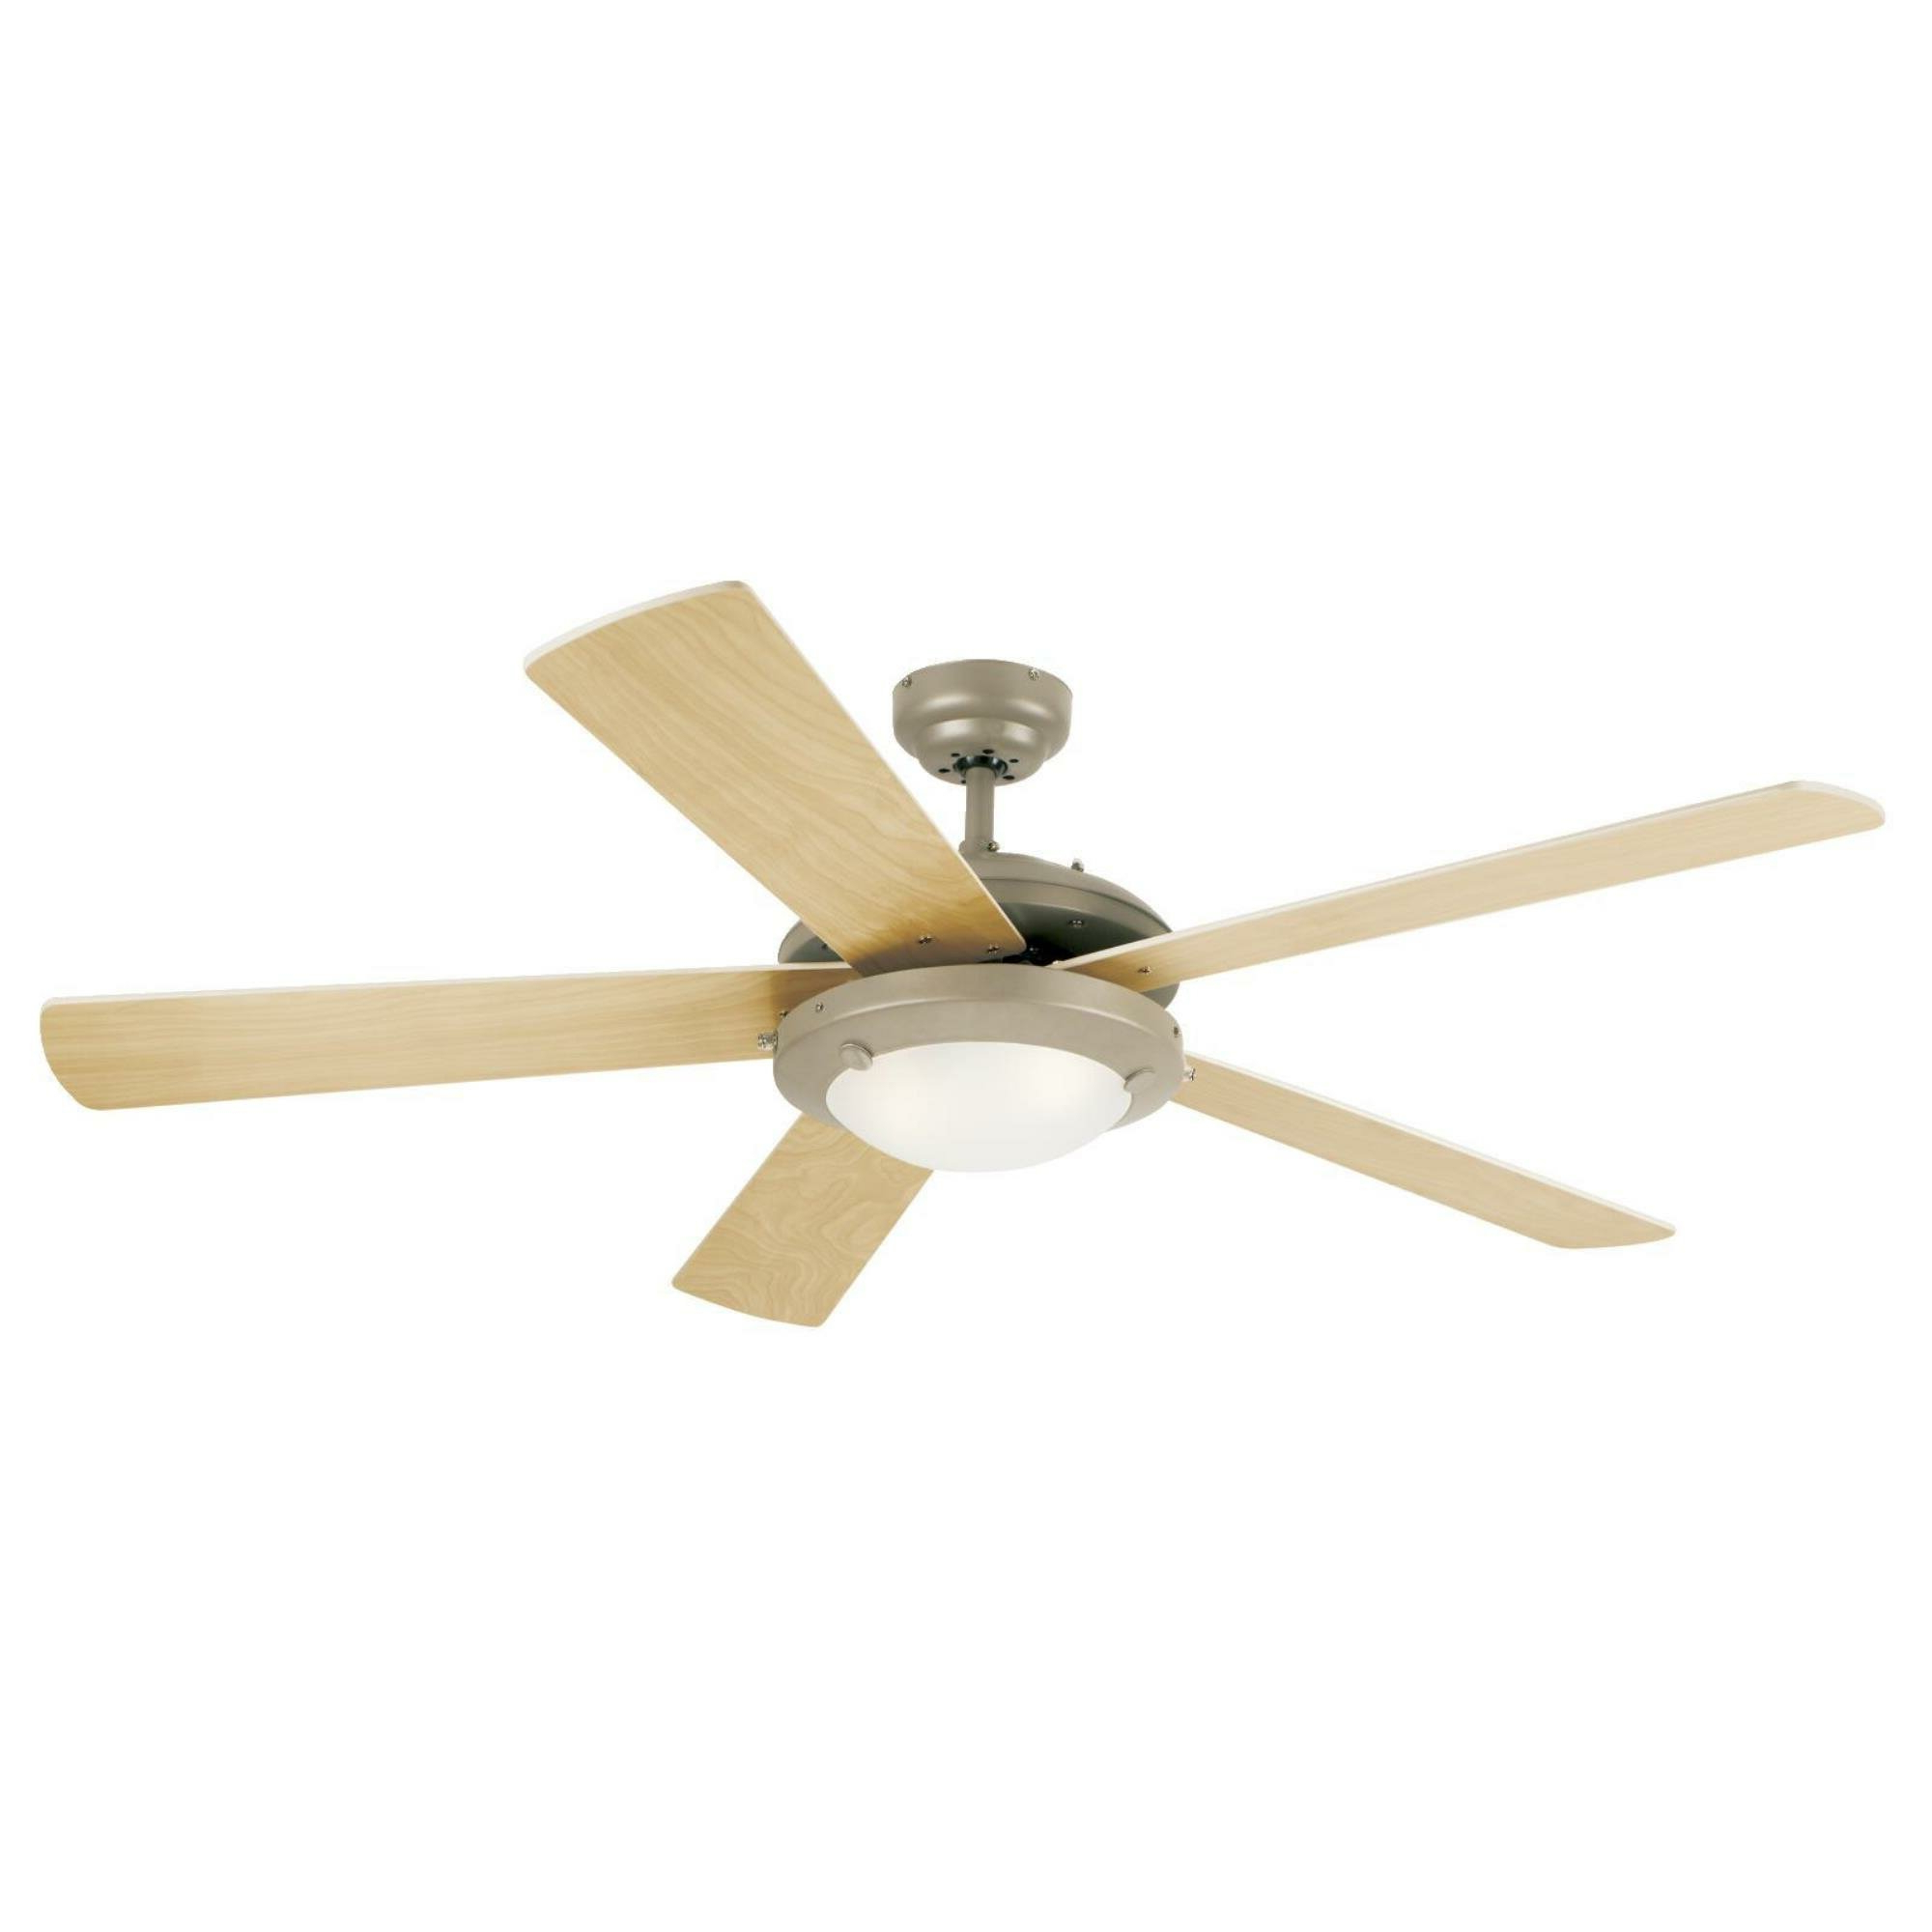 "52"" Creslow 5 Blade Ceiling Fan, Light Kit Included Intended For Fashionable Beltran 5 Blade Ceiling Fans (View 18 of 20)"